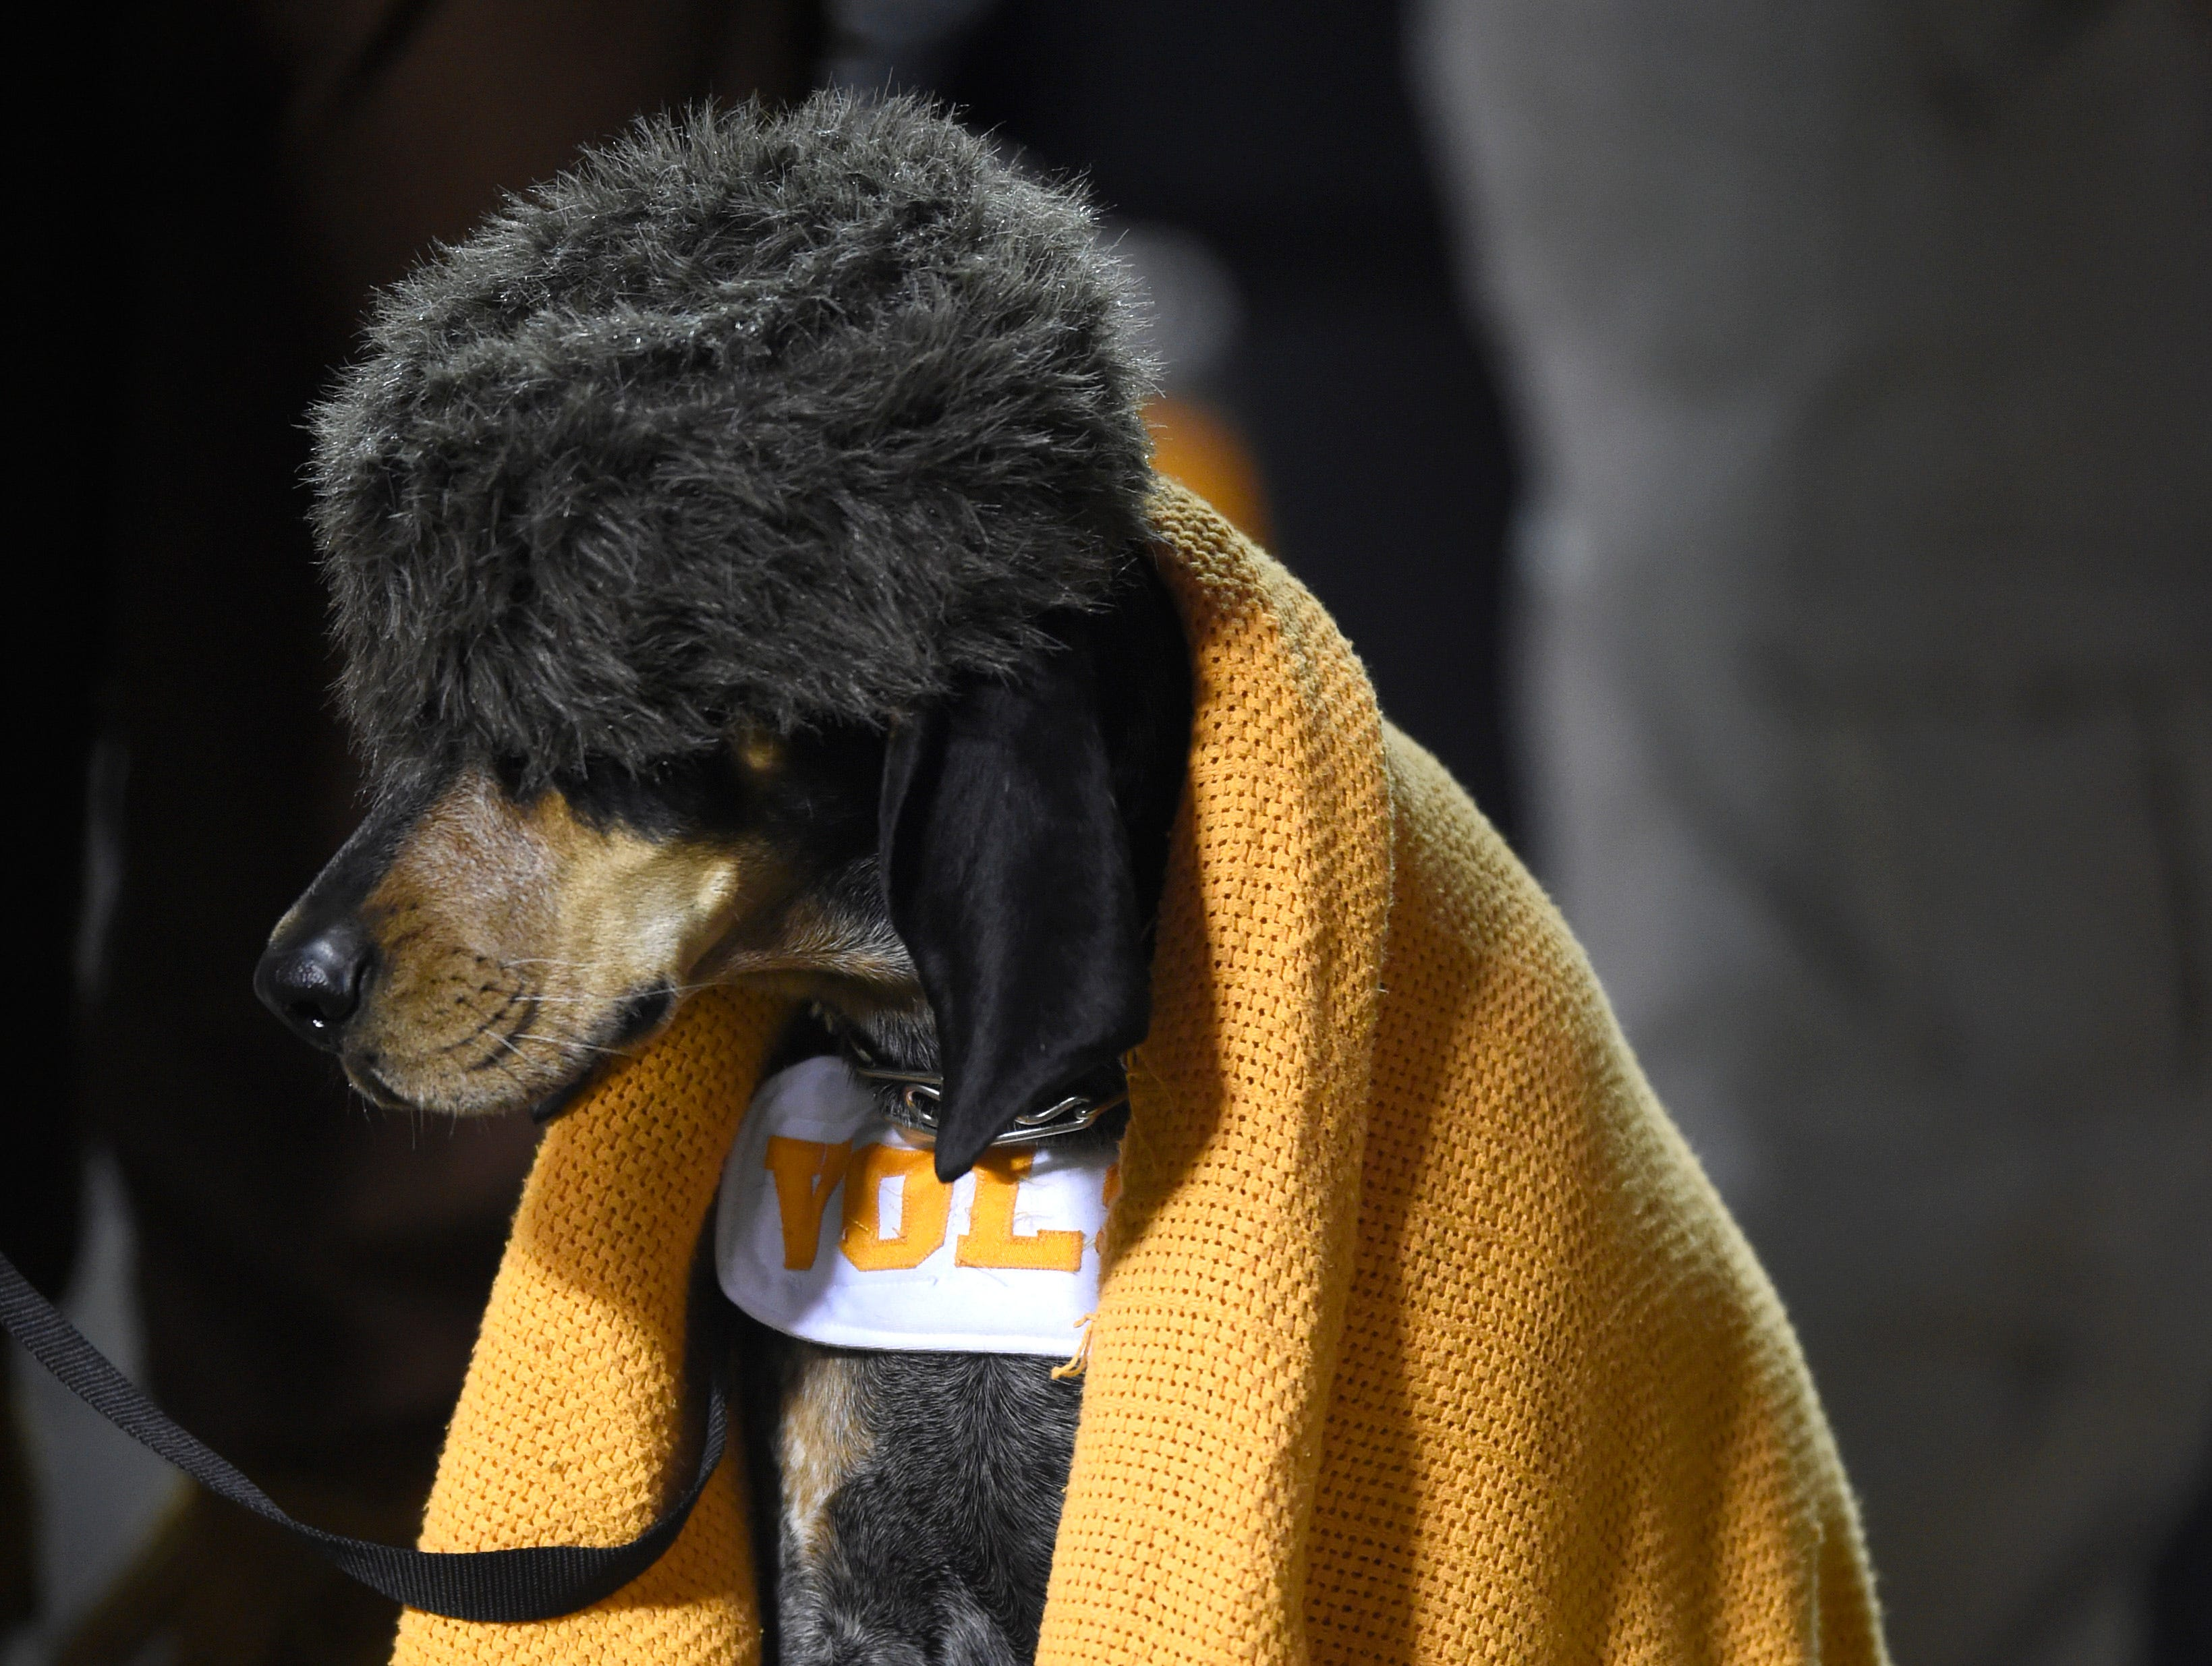 Smokey wears a coon skin hat as Tennessee plays Kentucky at Neyland Stadium in Knoxville, Tenn., Saturday, Nov. 15, 2014.